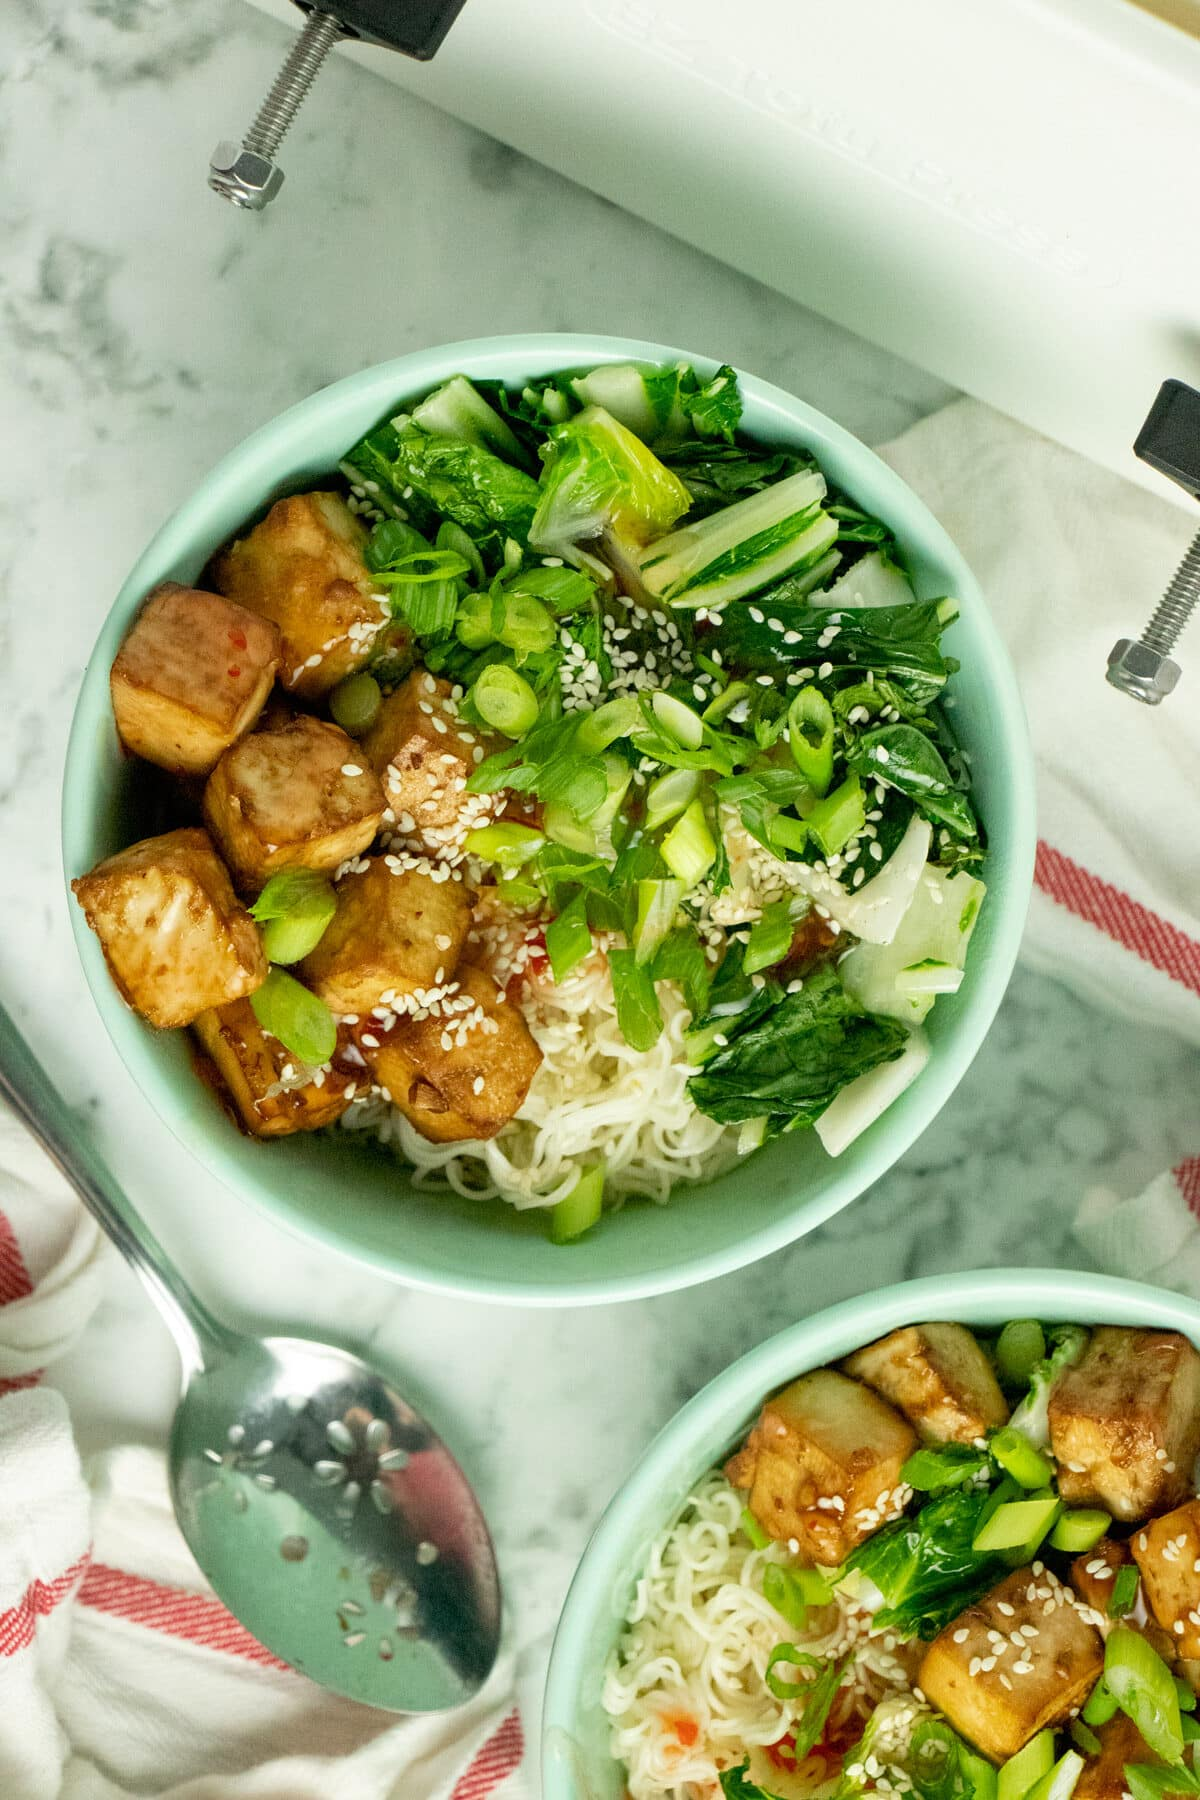 A blue bowl of tofu, noodles, and vegetables